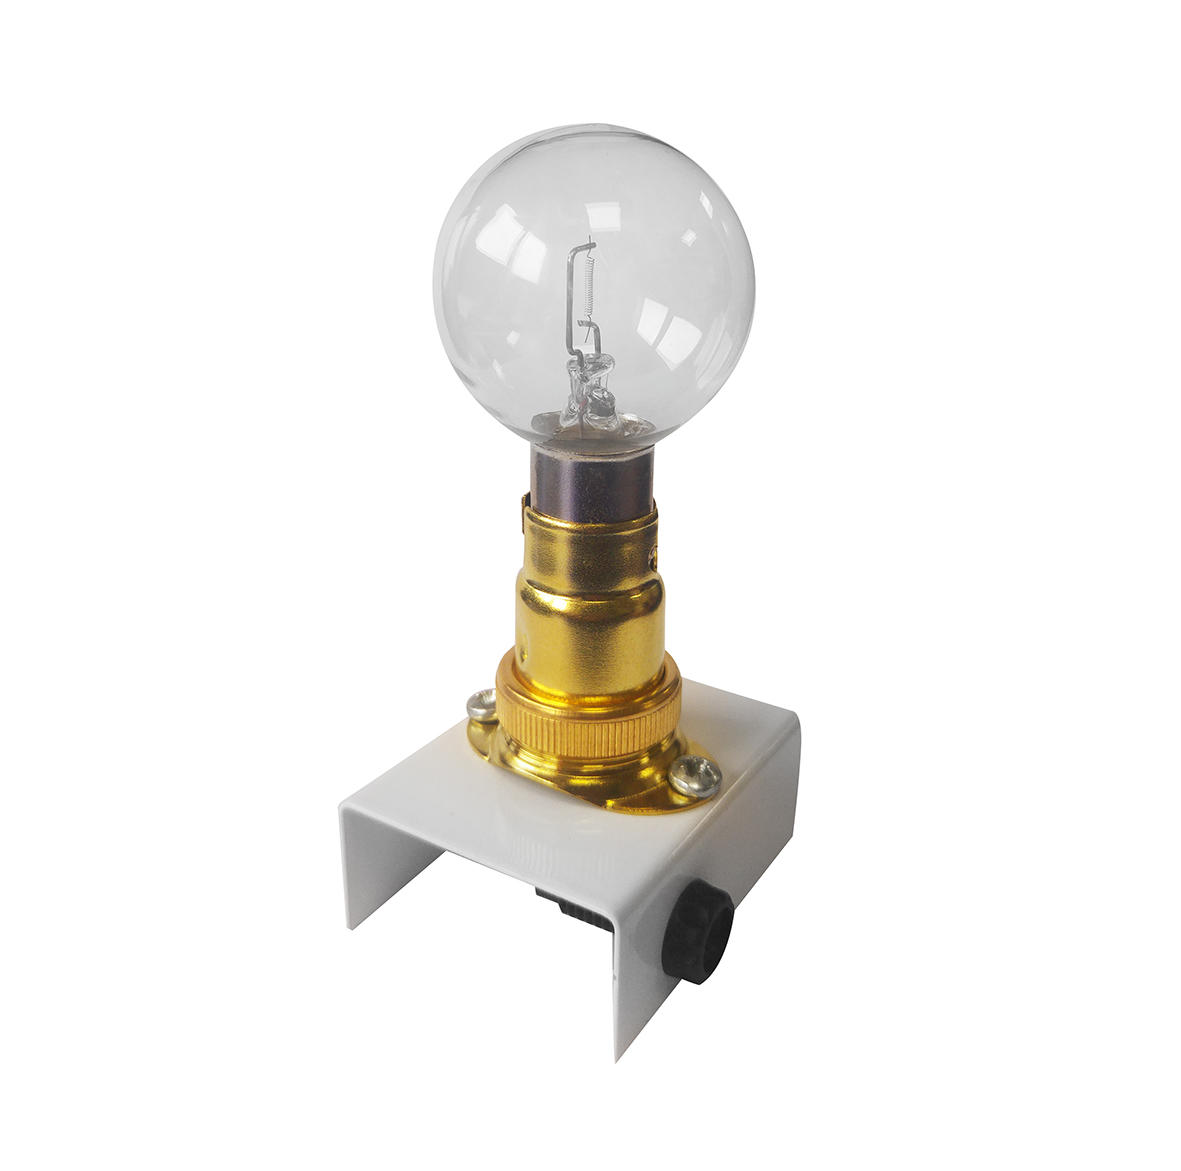 Mounted Sbc Lamp Holder Pack 10 12v 24w Or 36w Lamp